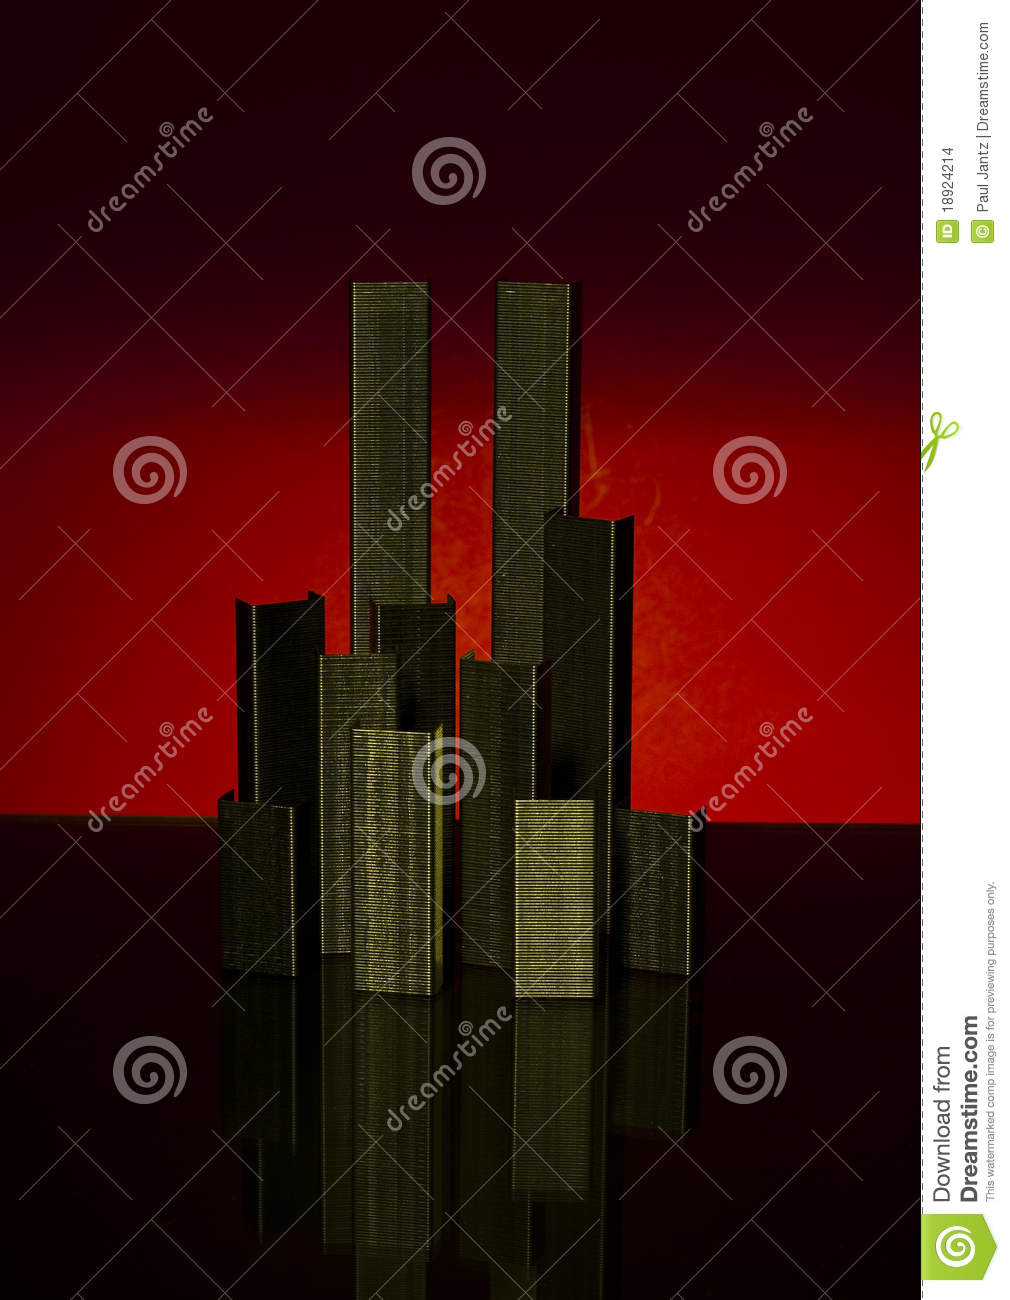 Similar Stock Images Of   Abstract Memorial To 9 11 Terrorist Attack